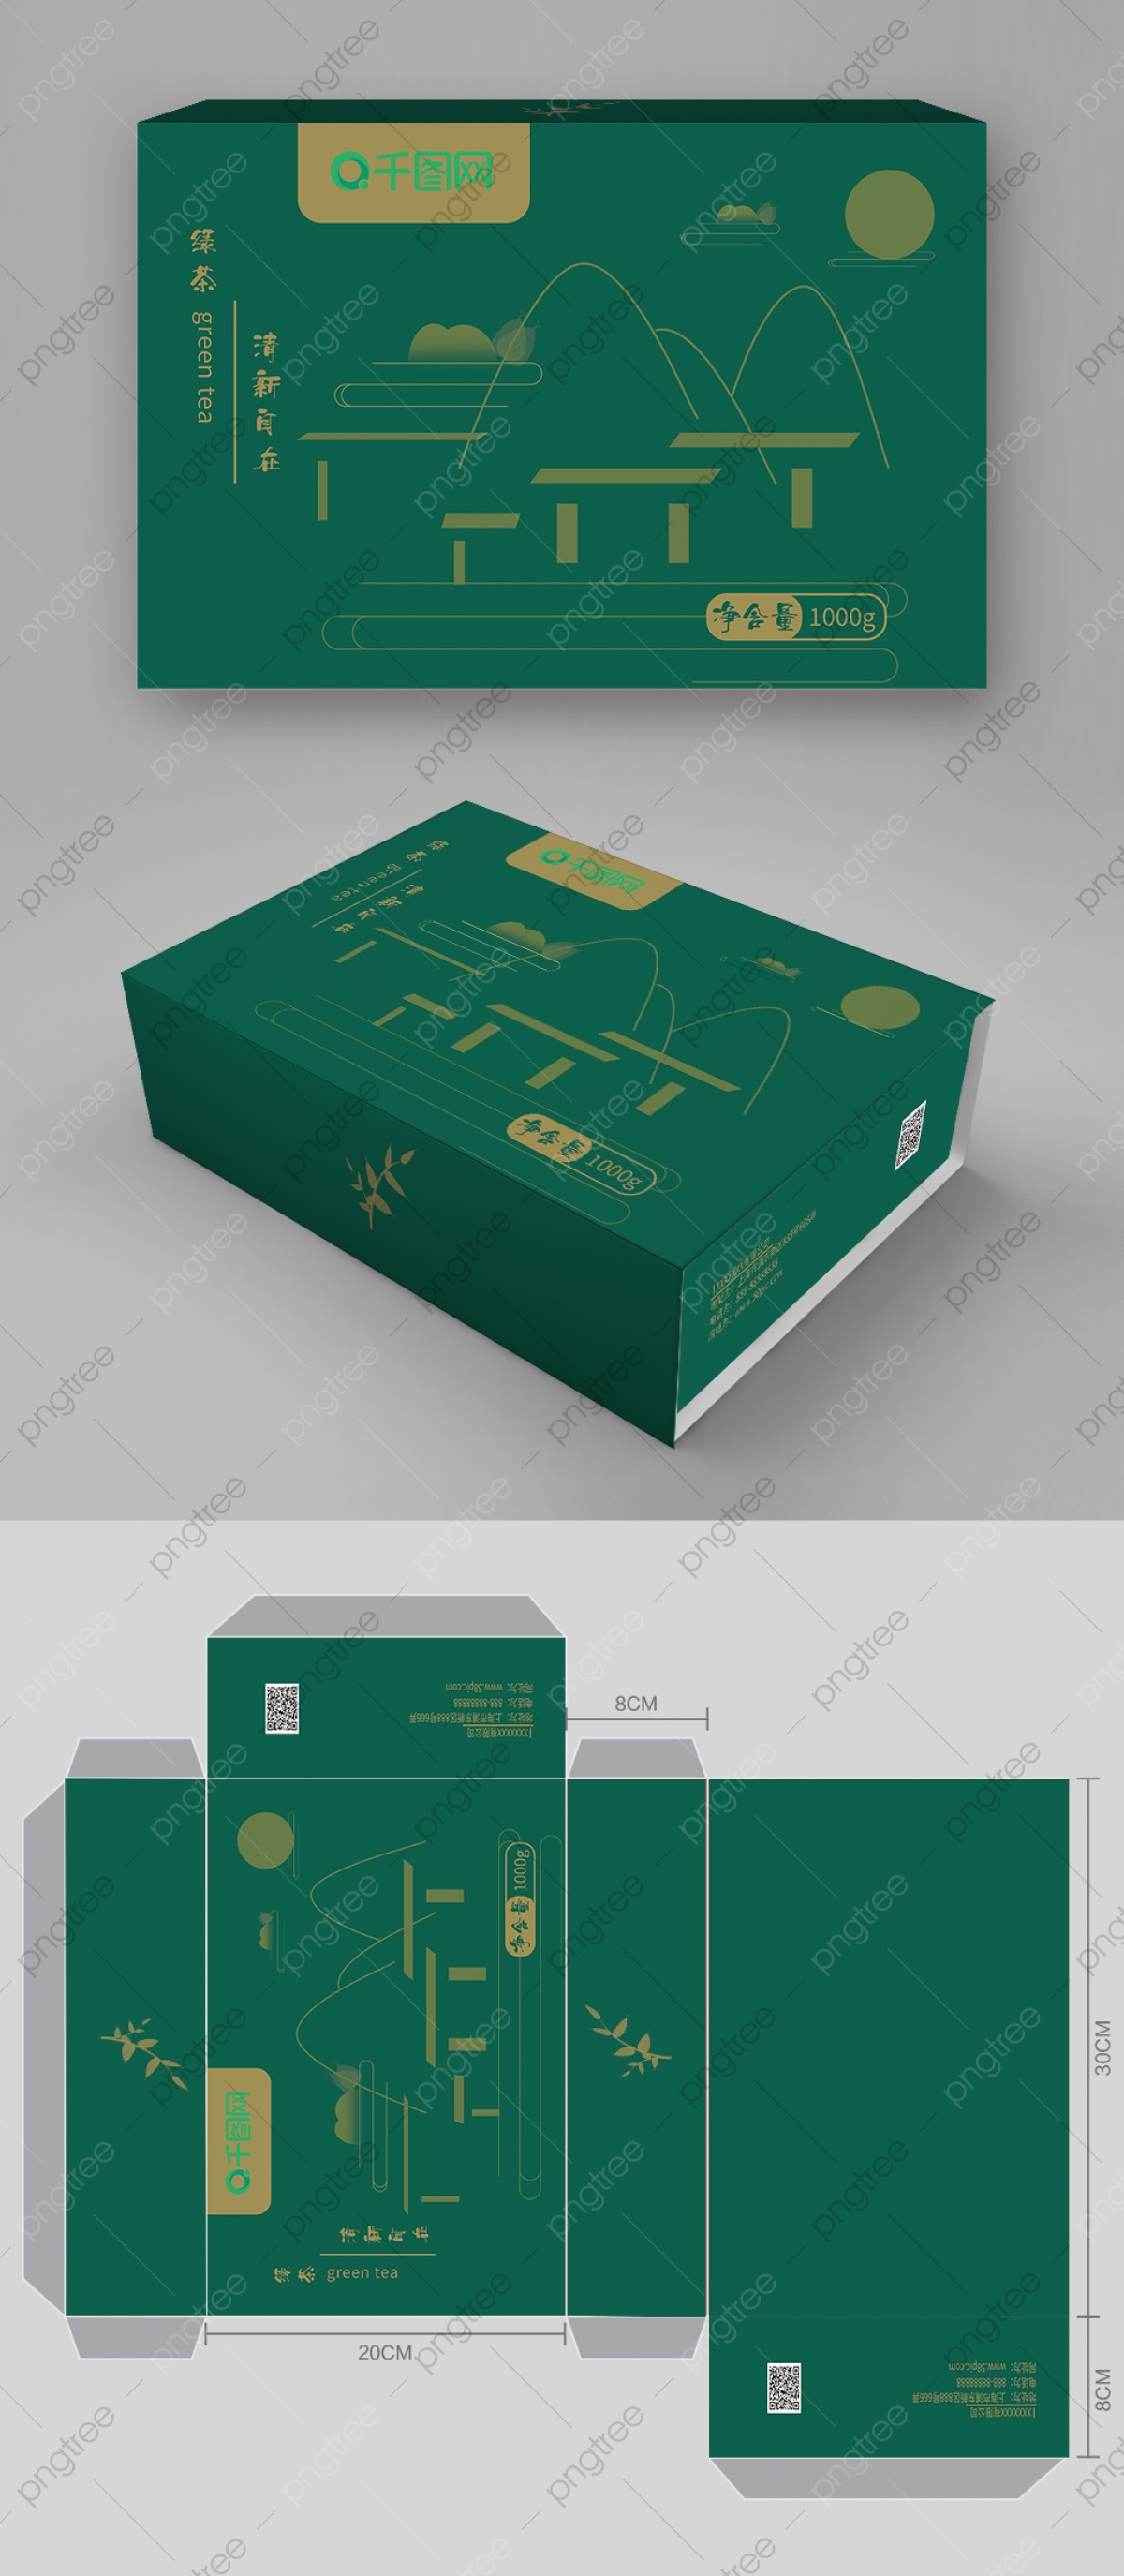 Tea Packaging Design Png Images Vector And Psd Files Free Download On Pngtree